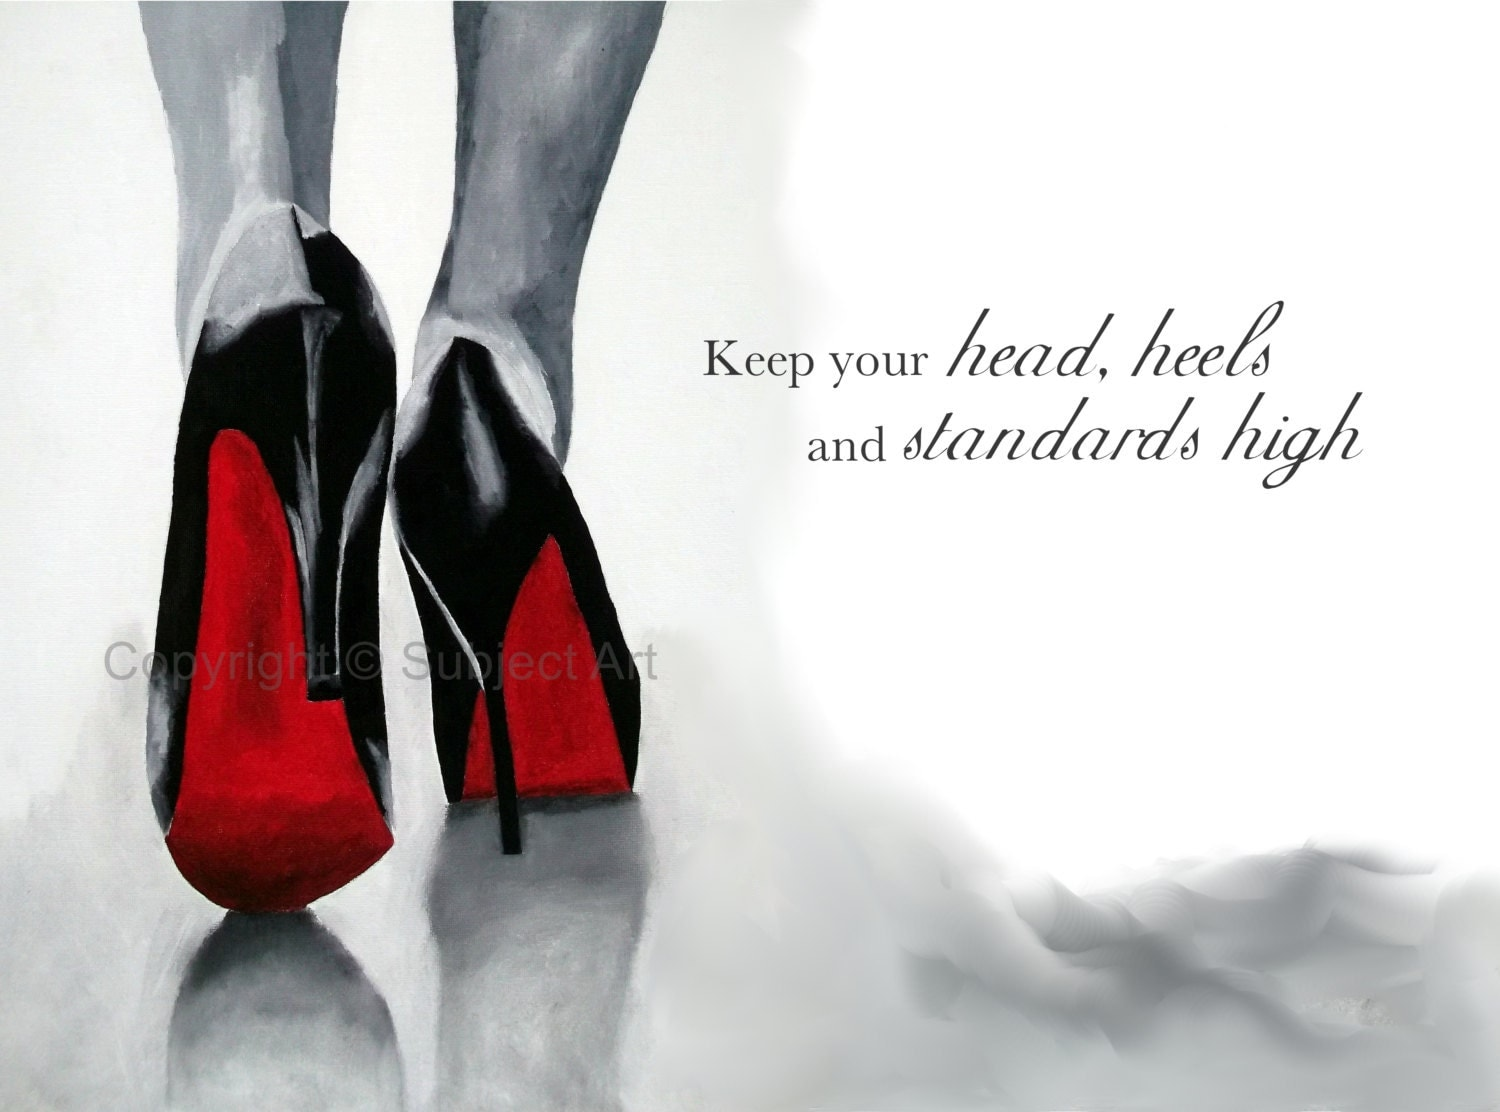 christian louboutin quotes on shoes